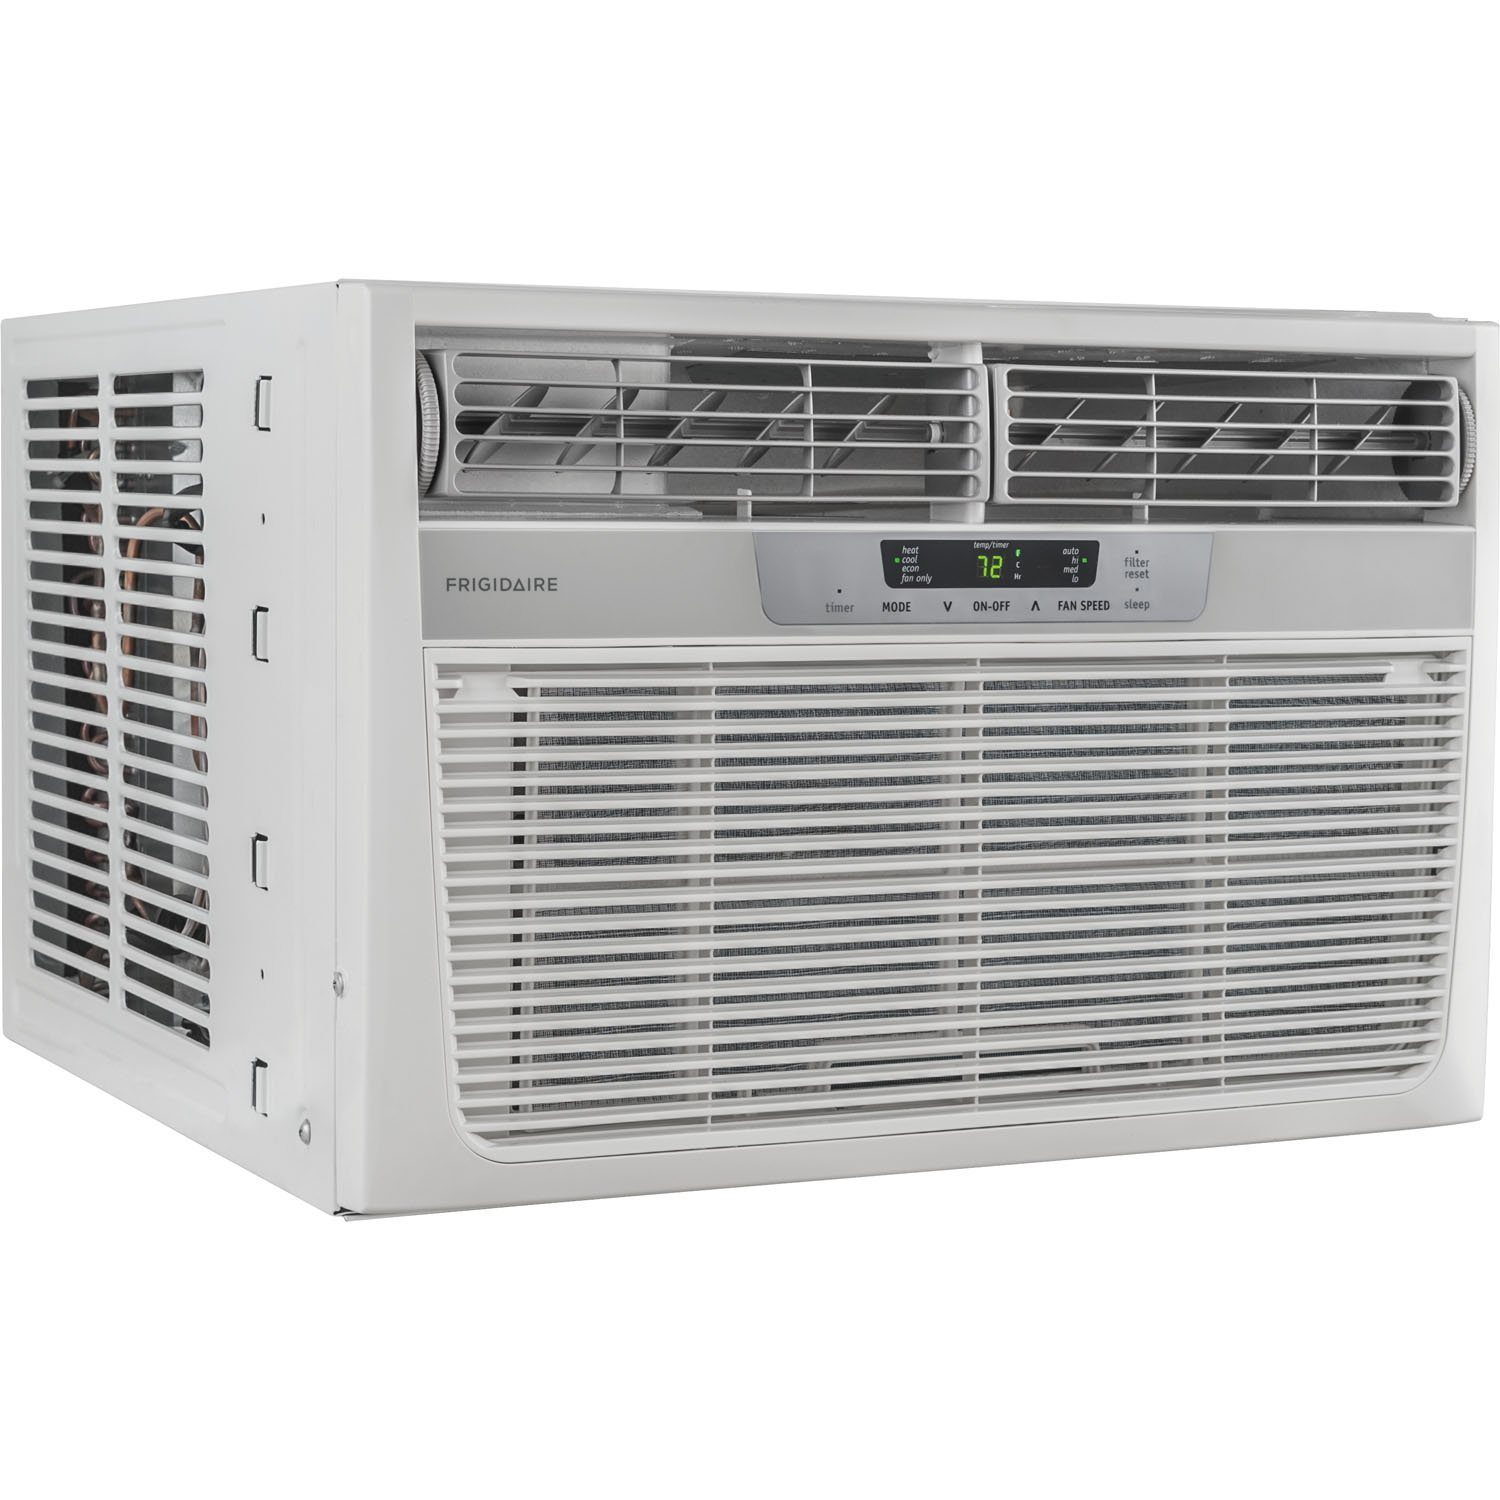 Frigidaire FFRH1222R2 12000 BTU 230-volt Compact Slide-Out Chassis Air Conditioner with 11000 BTU Supplemental Heat Capability by Frigidaire (Image #9)